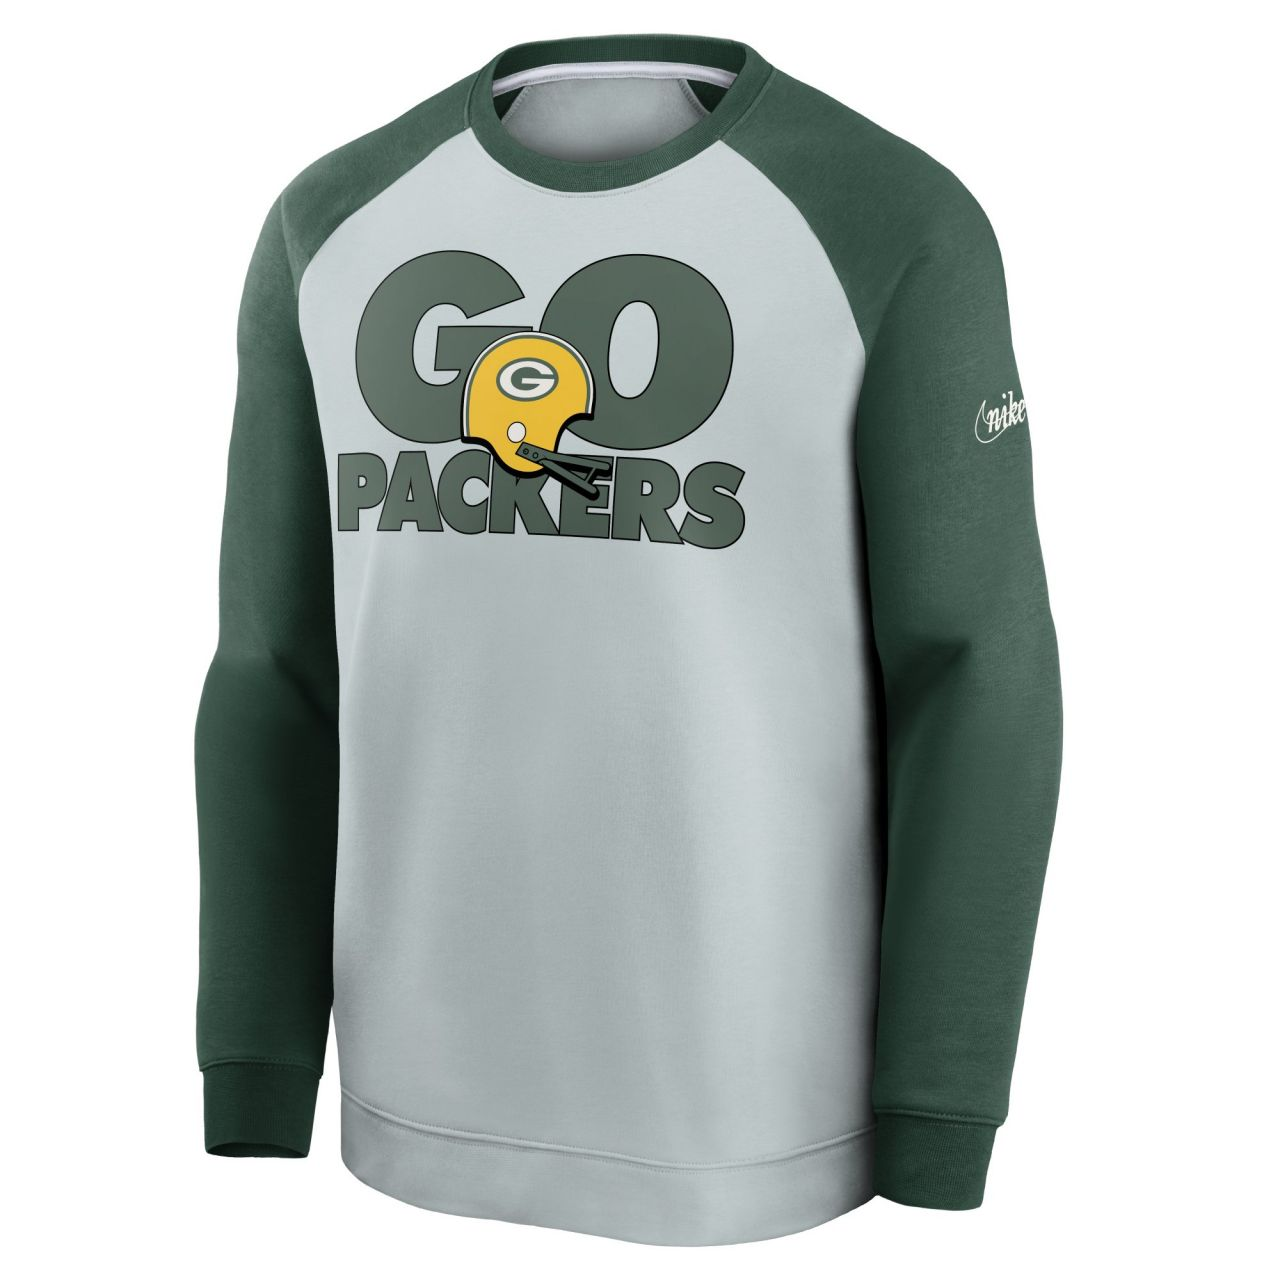 amfoo - Nike NFL Throwback Pullover - Green Bay Packers 1959-1982